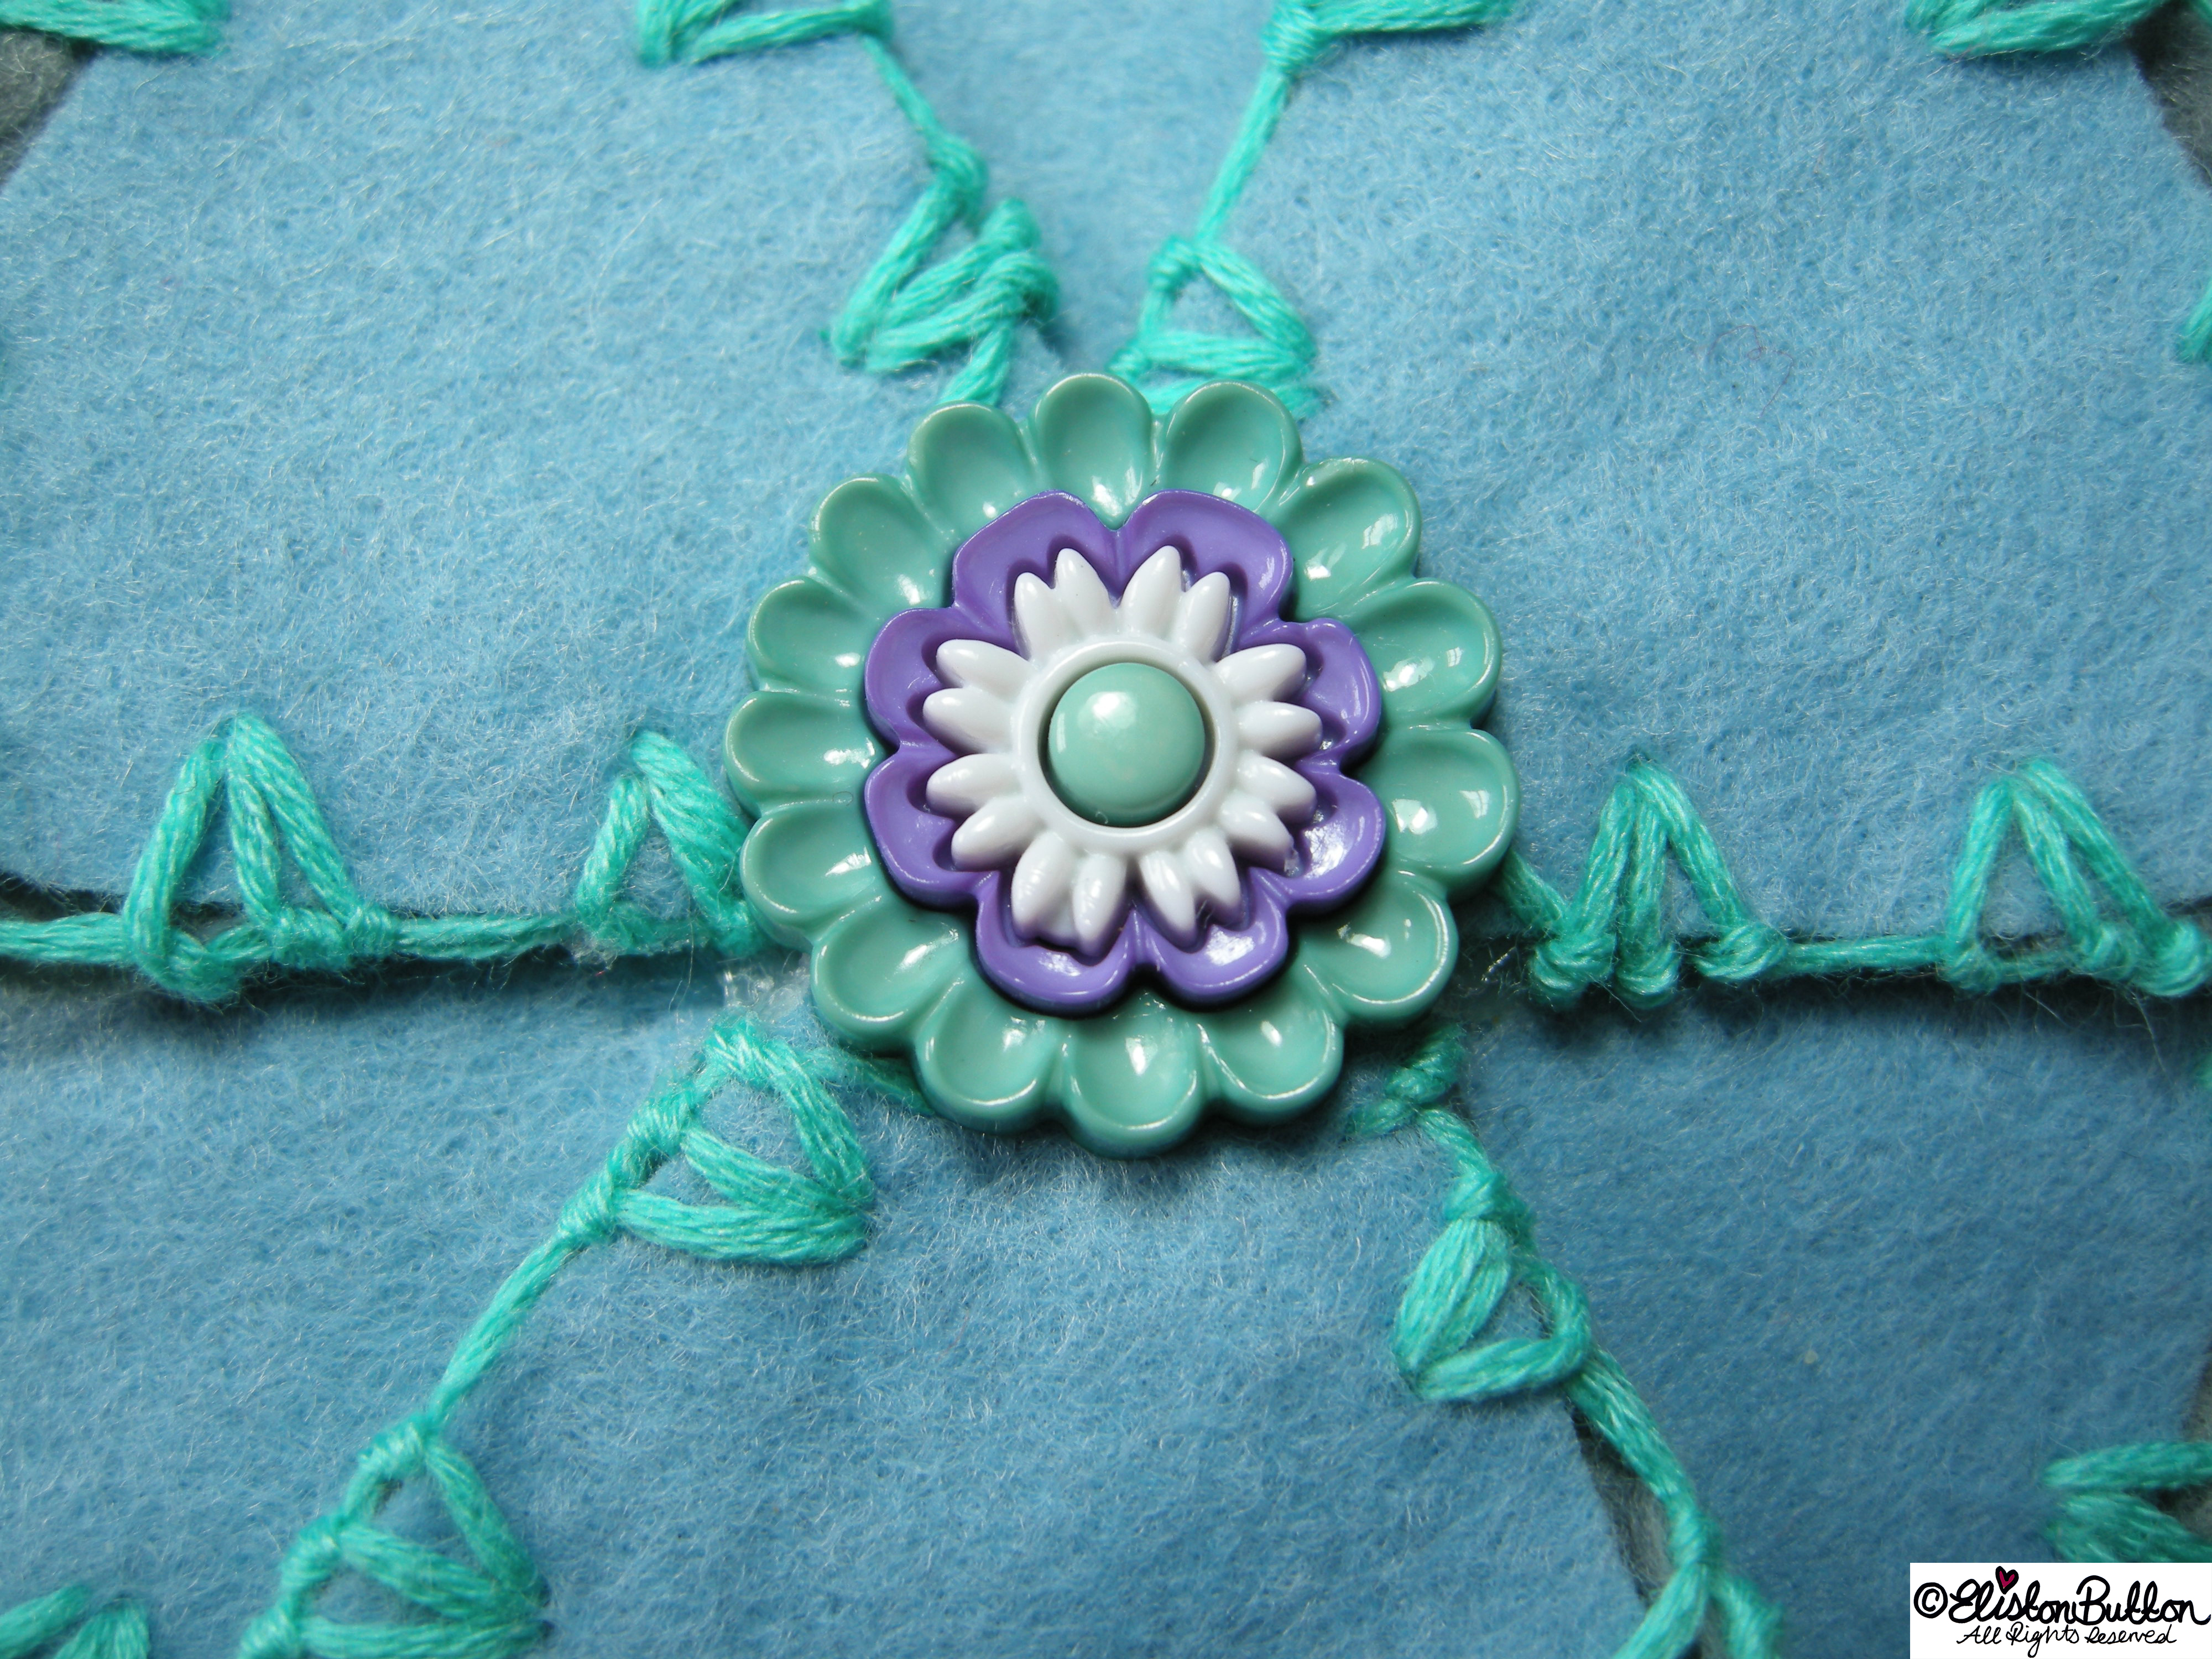 Aquamarine Turquoise, Pastel Blue and Grey Embroidered Felt Flower Brooch - Centrepiece Detail - 27 Before 27 – Aquamarine at www.elistonbutton.com - Eliston Button - That Crafty Kid – Art, Design, Craft & Adventure.